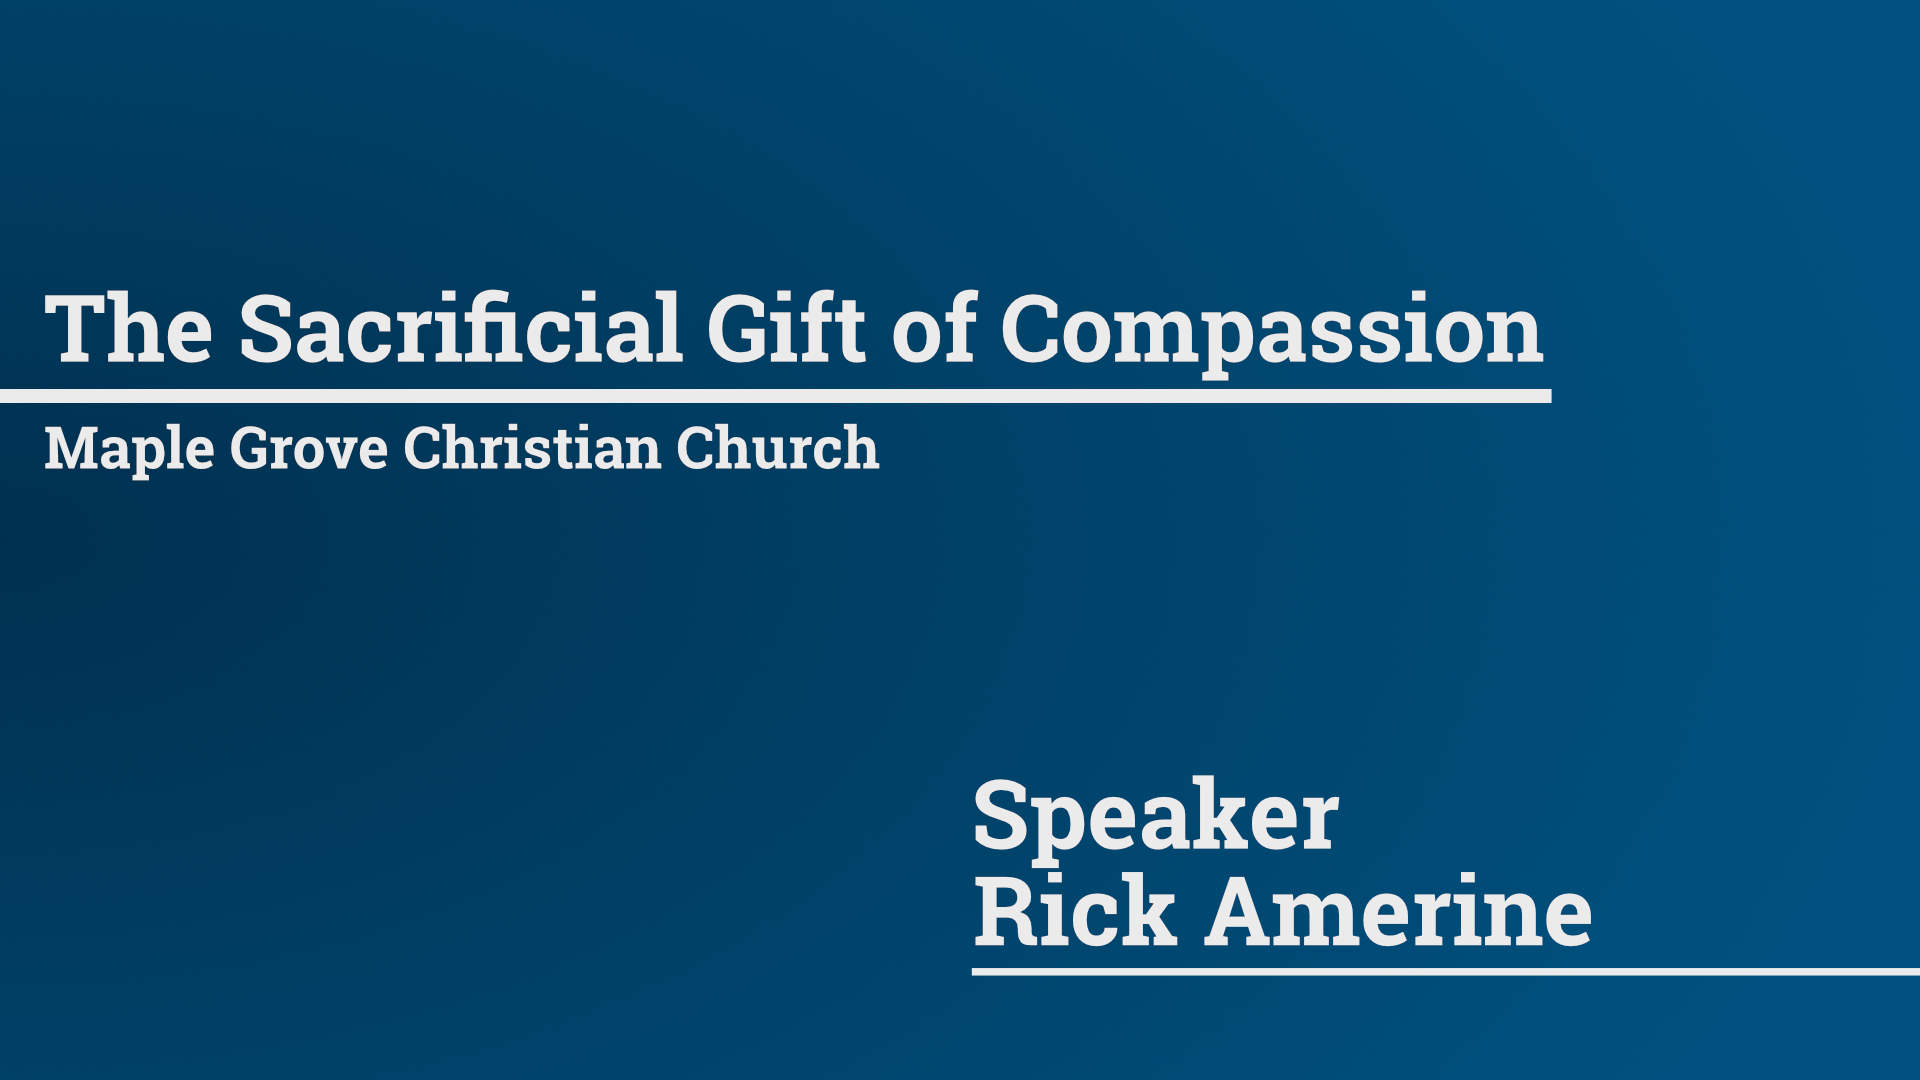 The Sacrificial Gift of Compassion • March 6, 2016